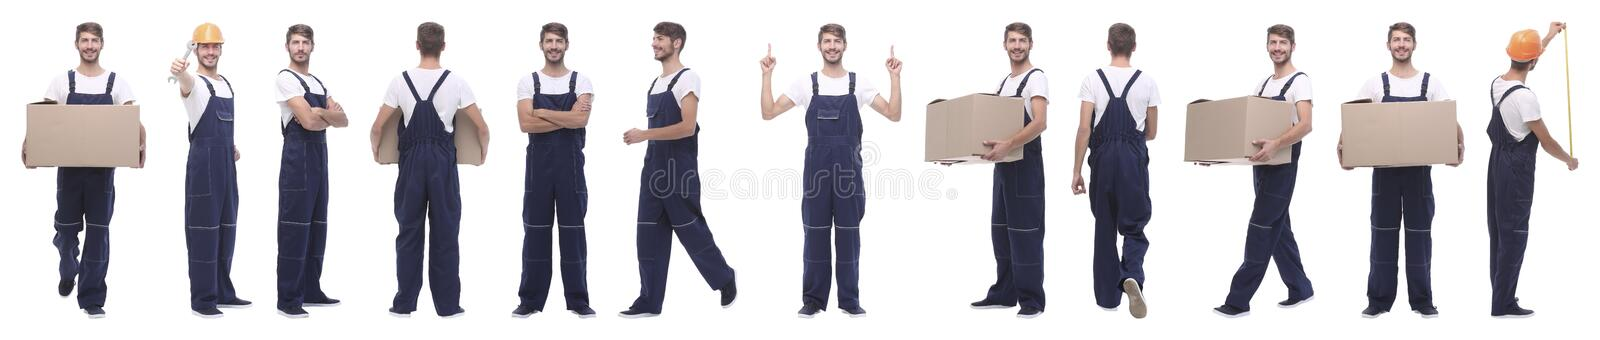 Panoramic collage of skilled handyman isolated on white royalty free stock photo